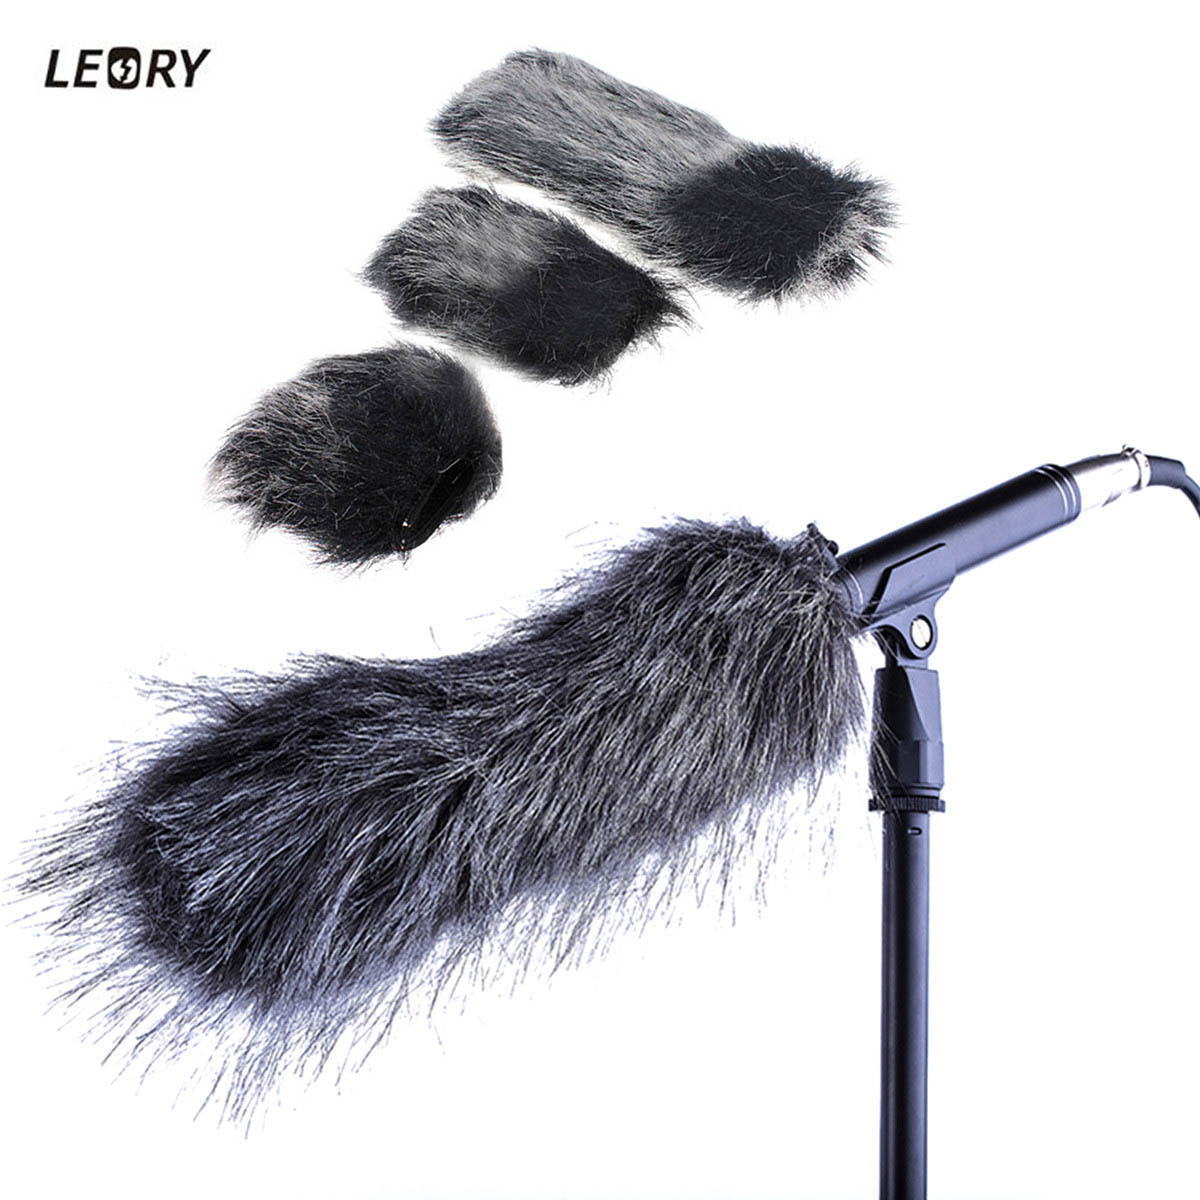 LEORY Microphone Muff Windscreen Artificial Outdoor Fur Wind Sleeve Shield Cover For Professional Mic Microphone 7cm 9.5cm 16cm